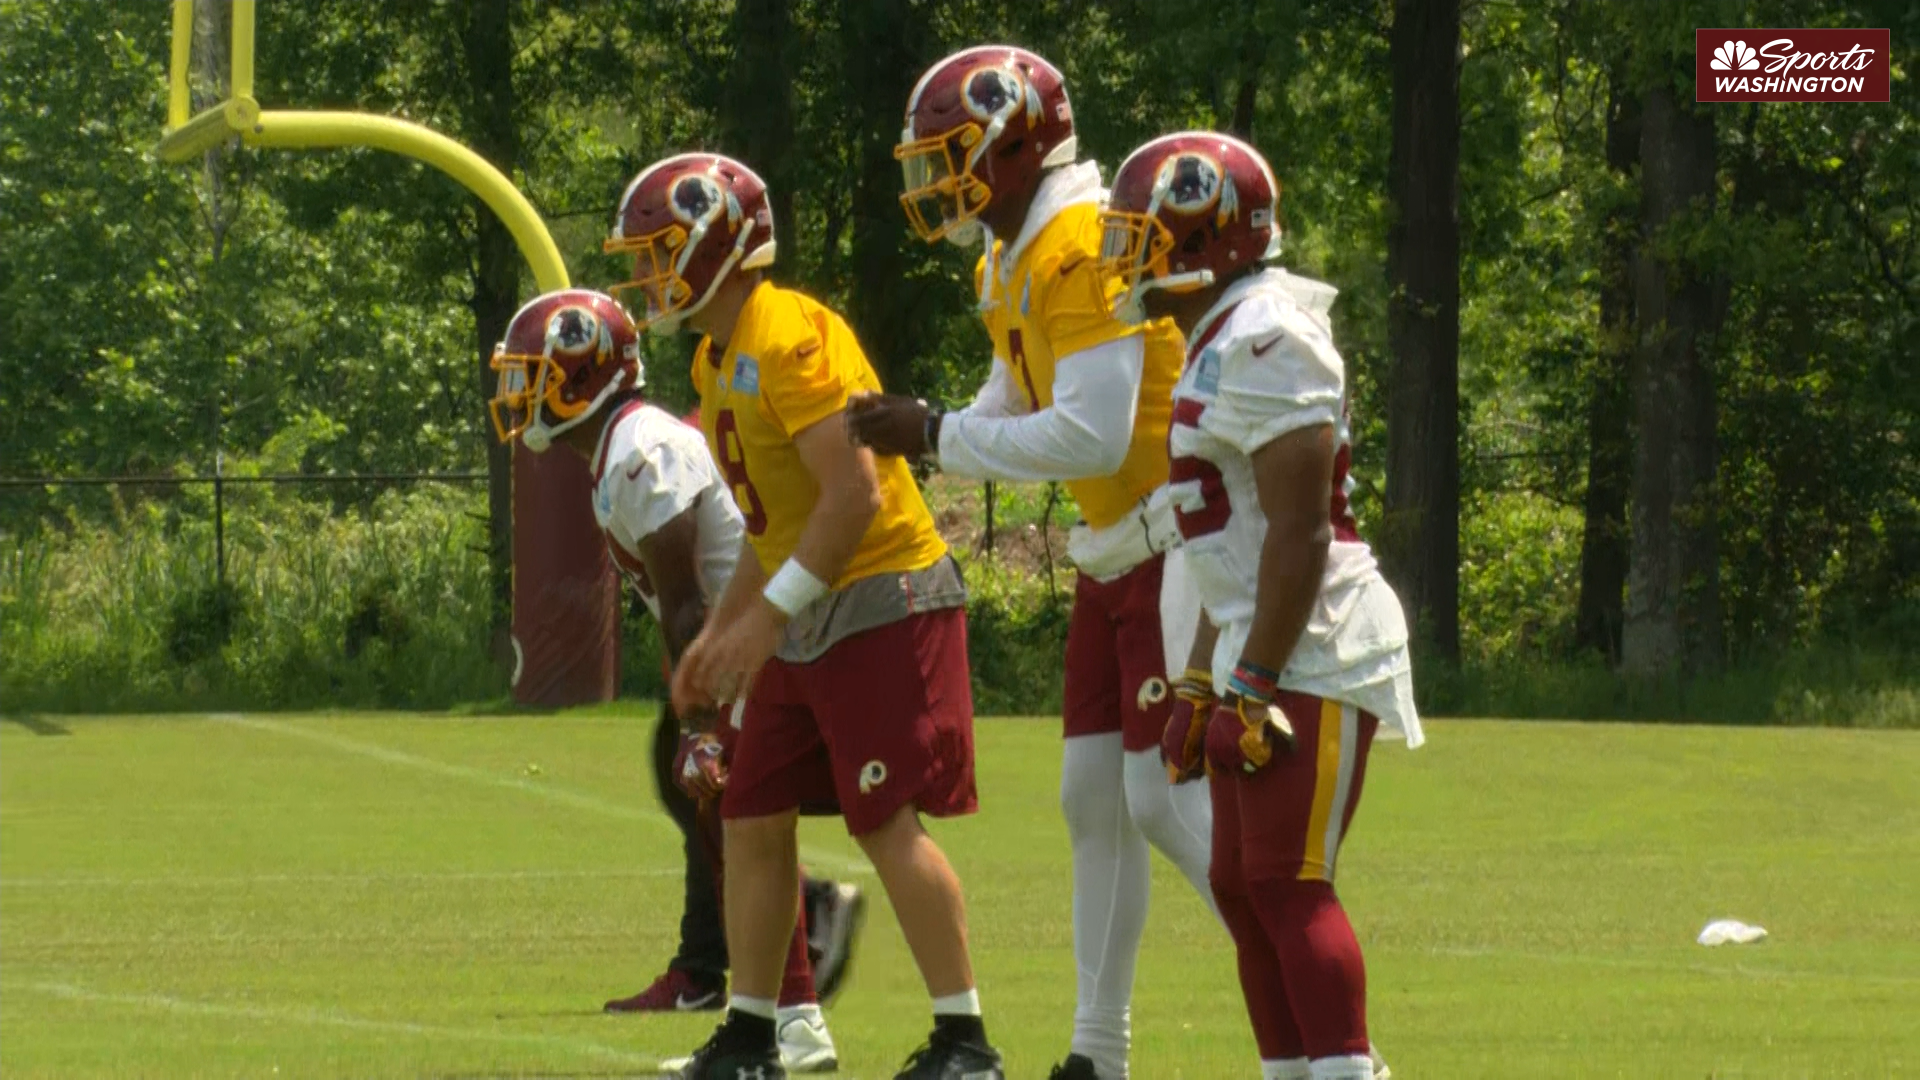 D.C. Sports Live Fresh Take: Who will win the Redskins QB battle?